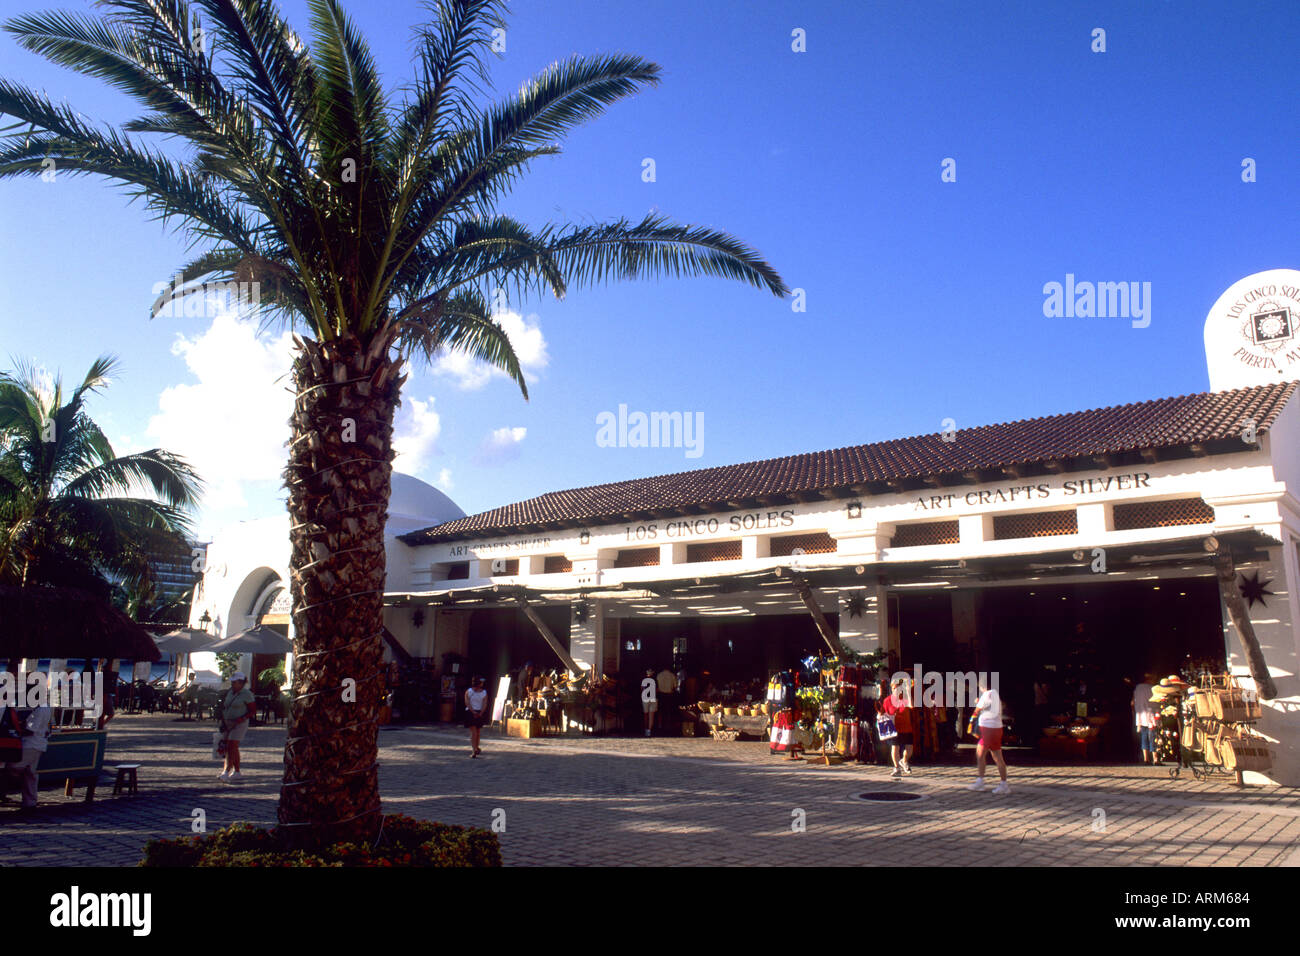 Tourists and at Puerta Maya Harbor Shops in Cozumel Mexico - Stock Image